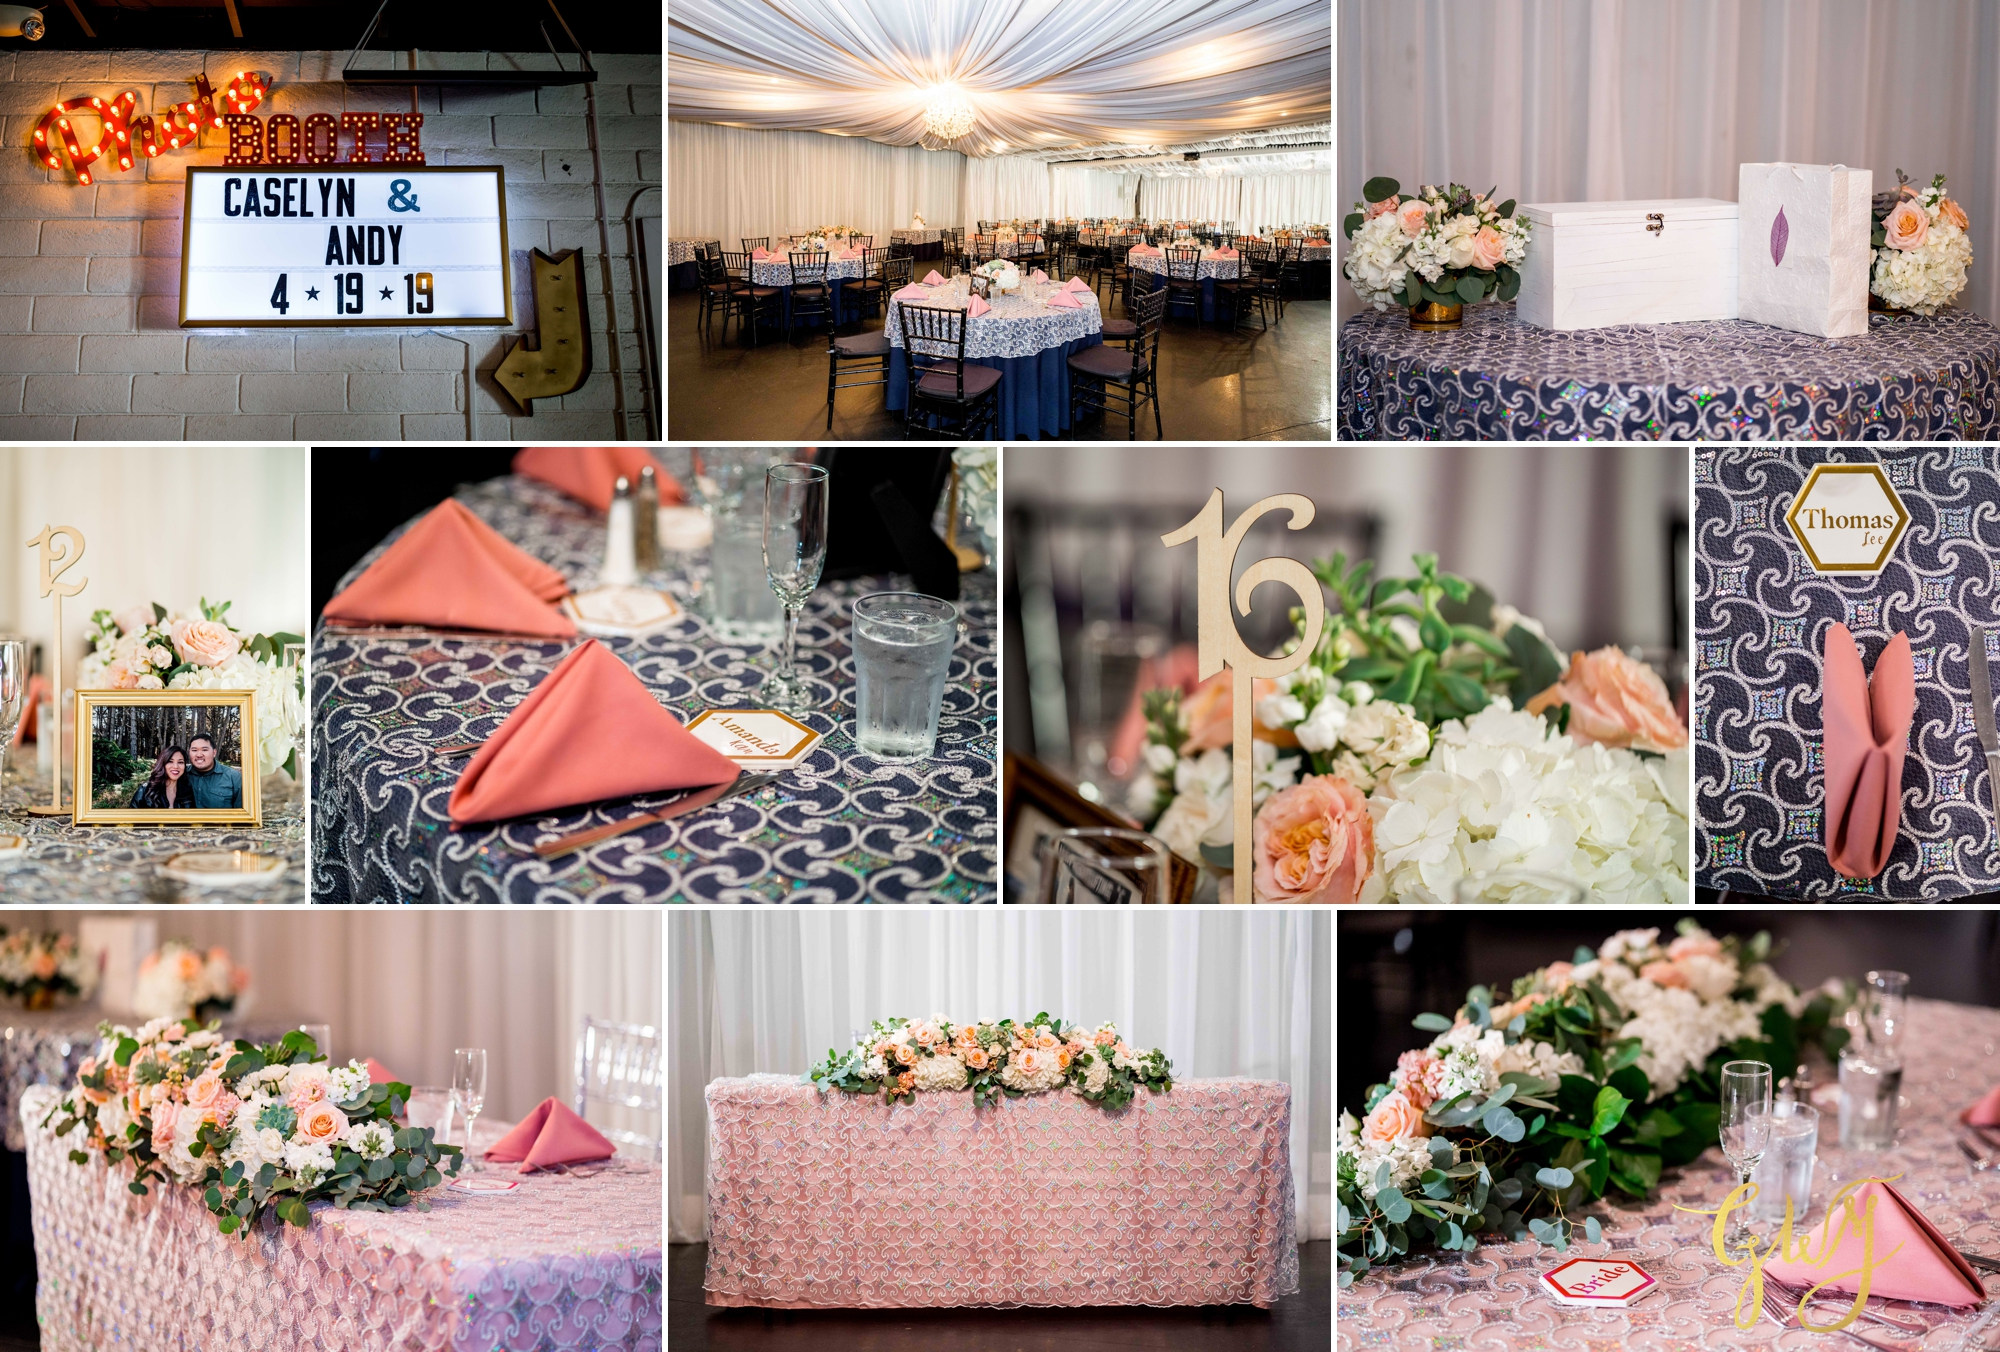 Andy + Caselyn's White House Event Center Orange County Spring Wedding by Glass Woods Media 40.jpg